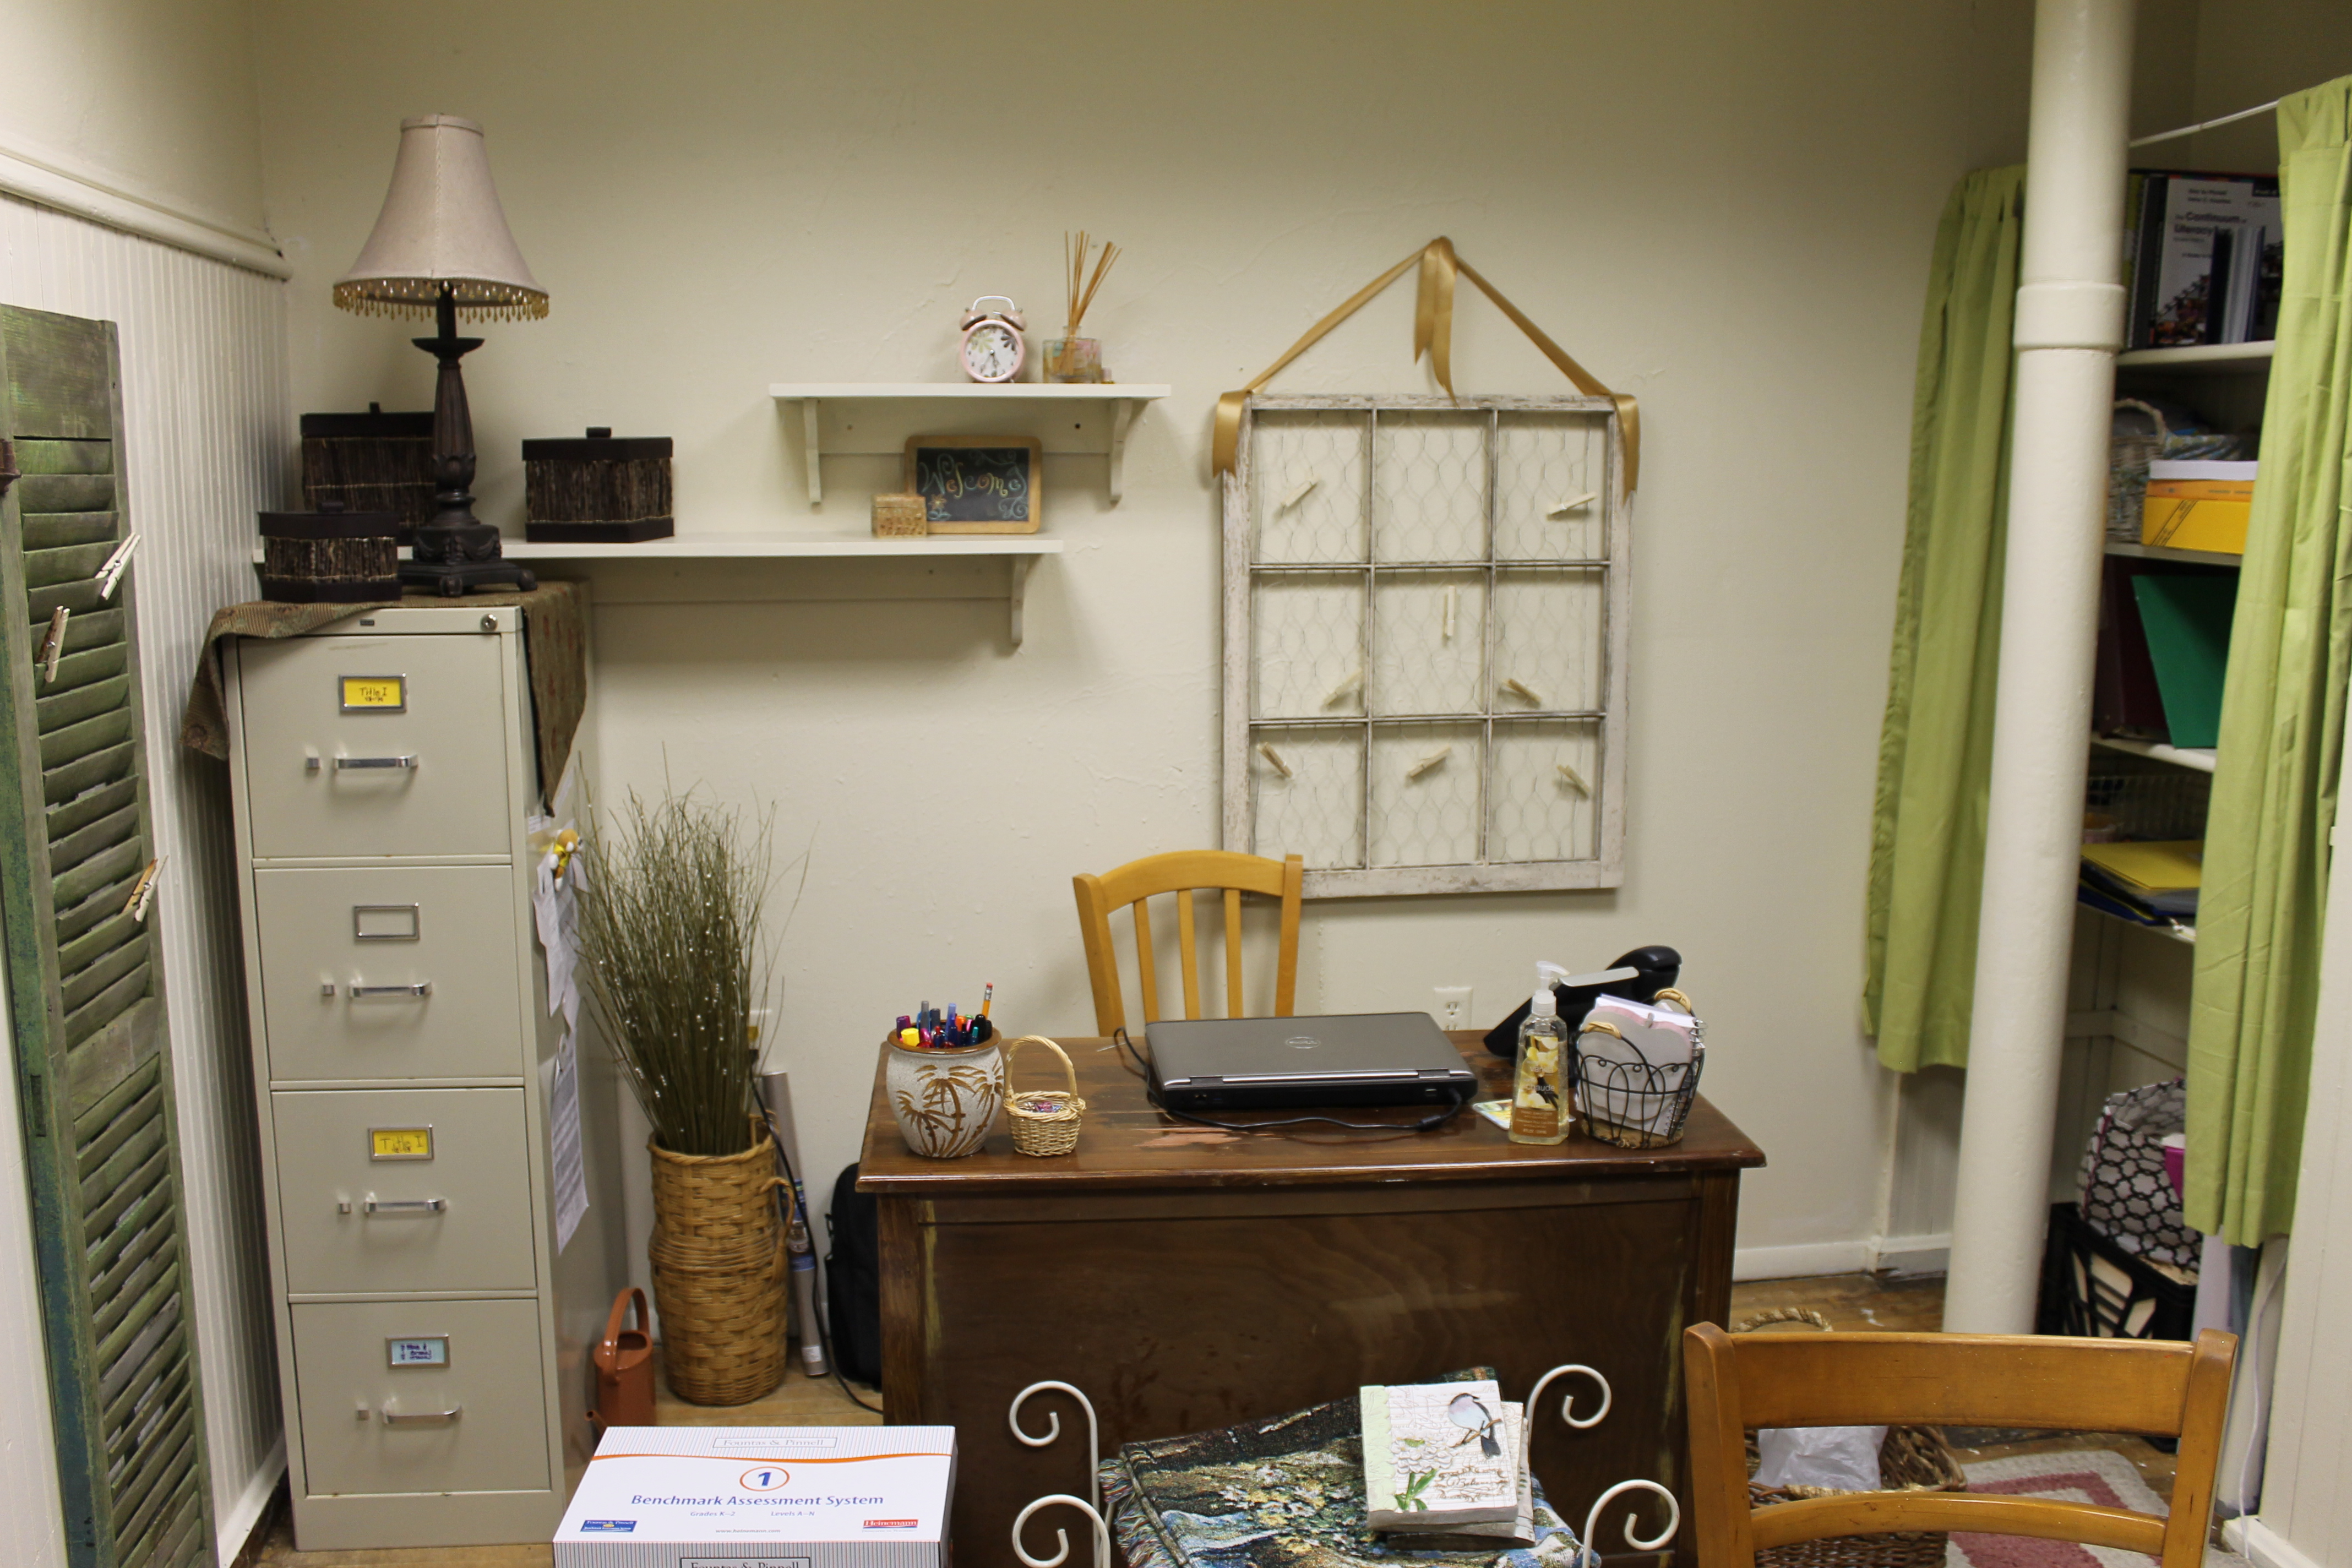 This Old window, desk and other items found at yard sales which give this Title I learning place a charm.